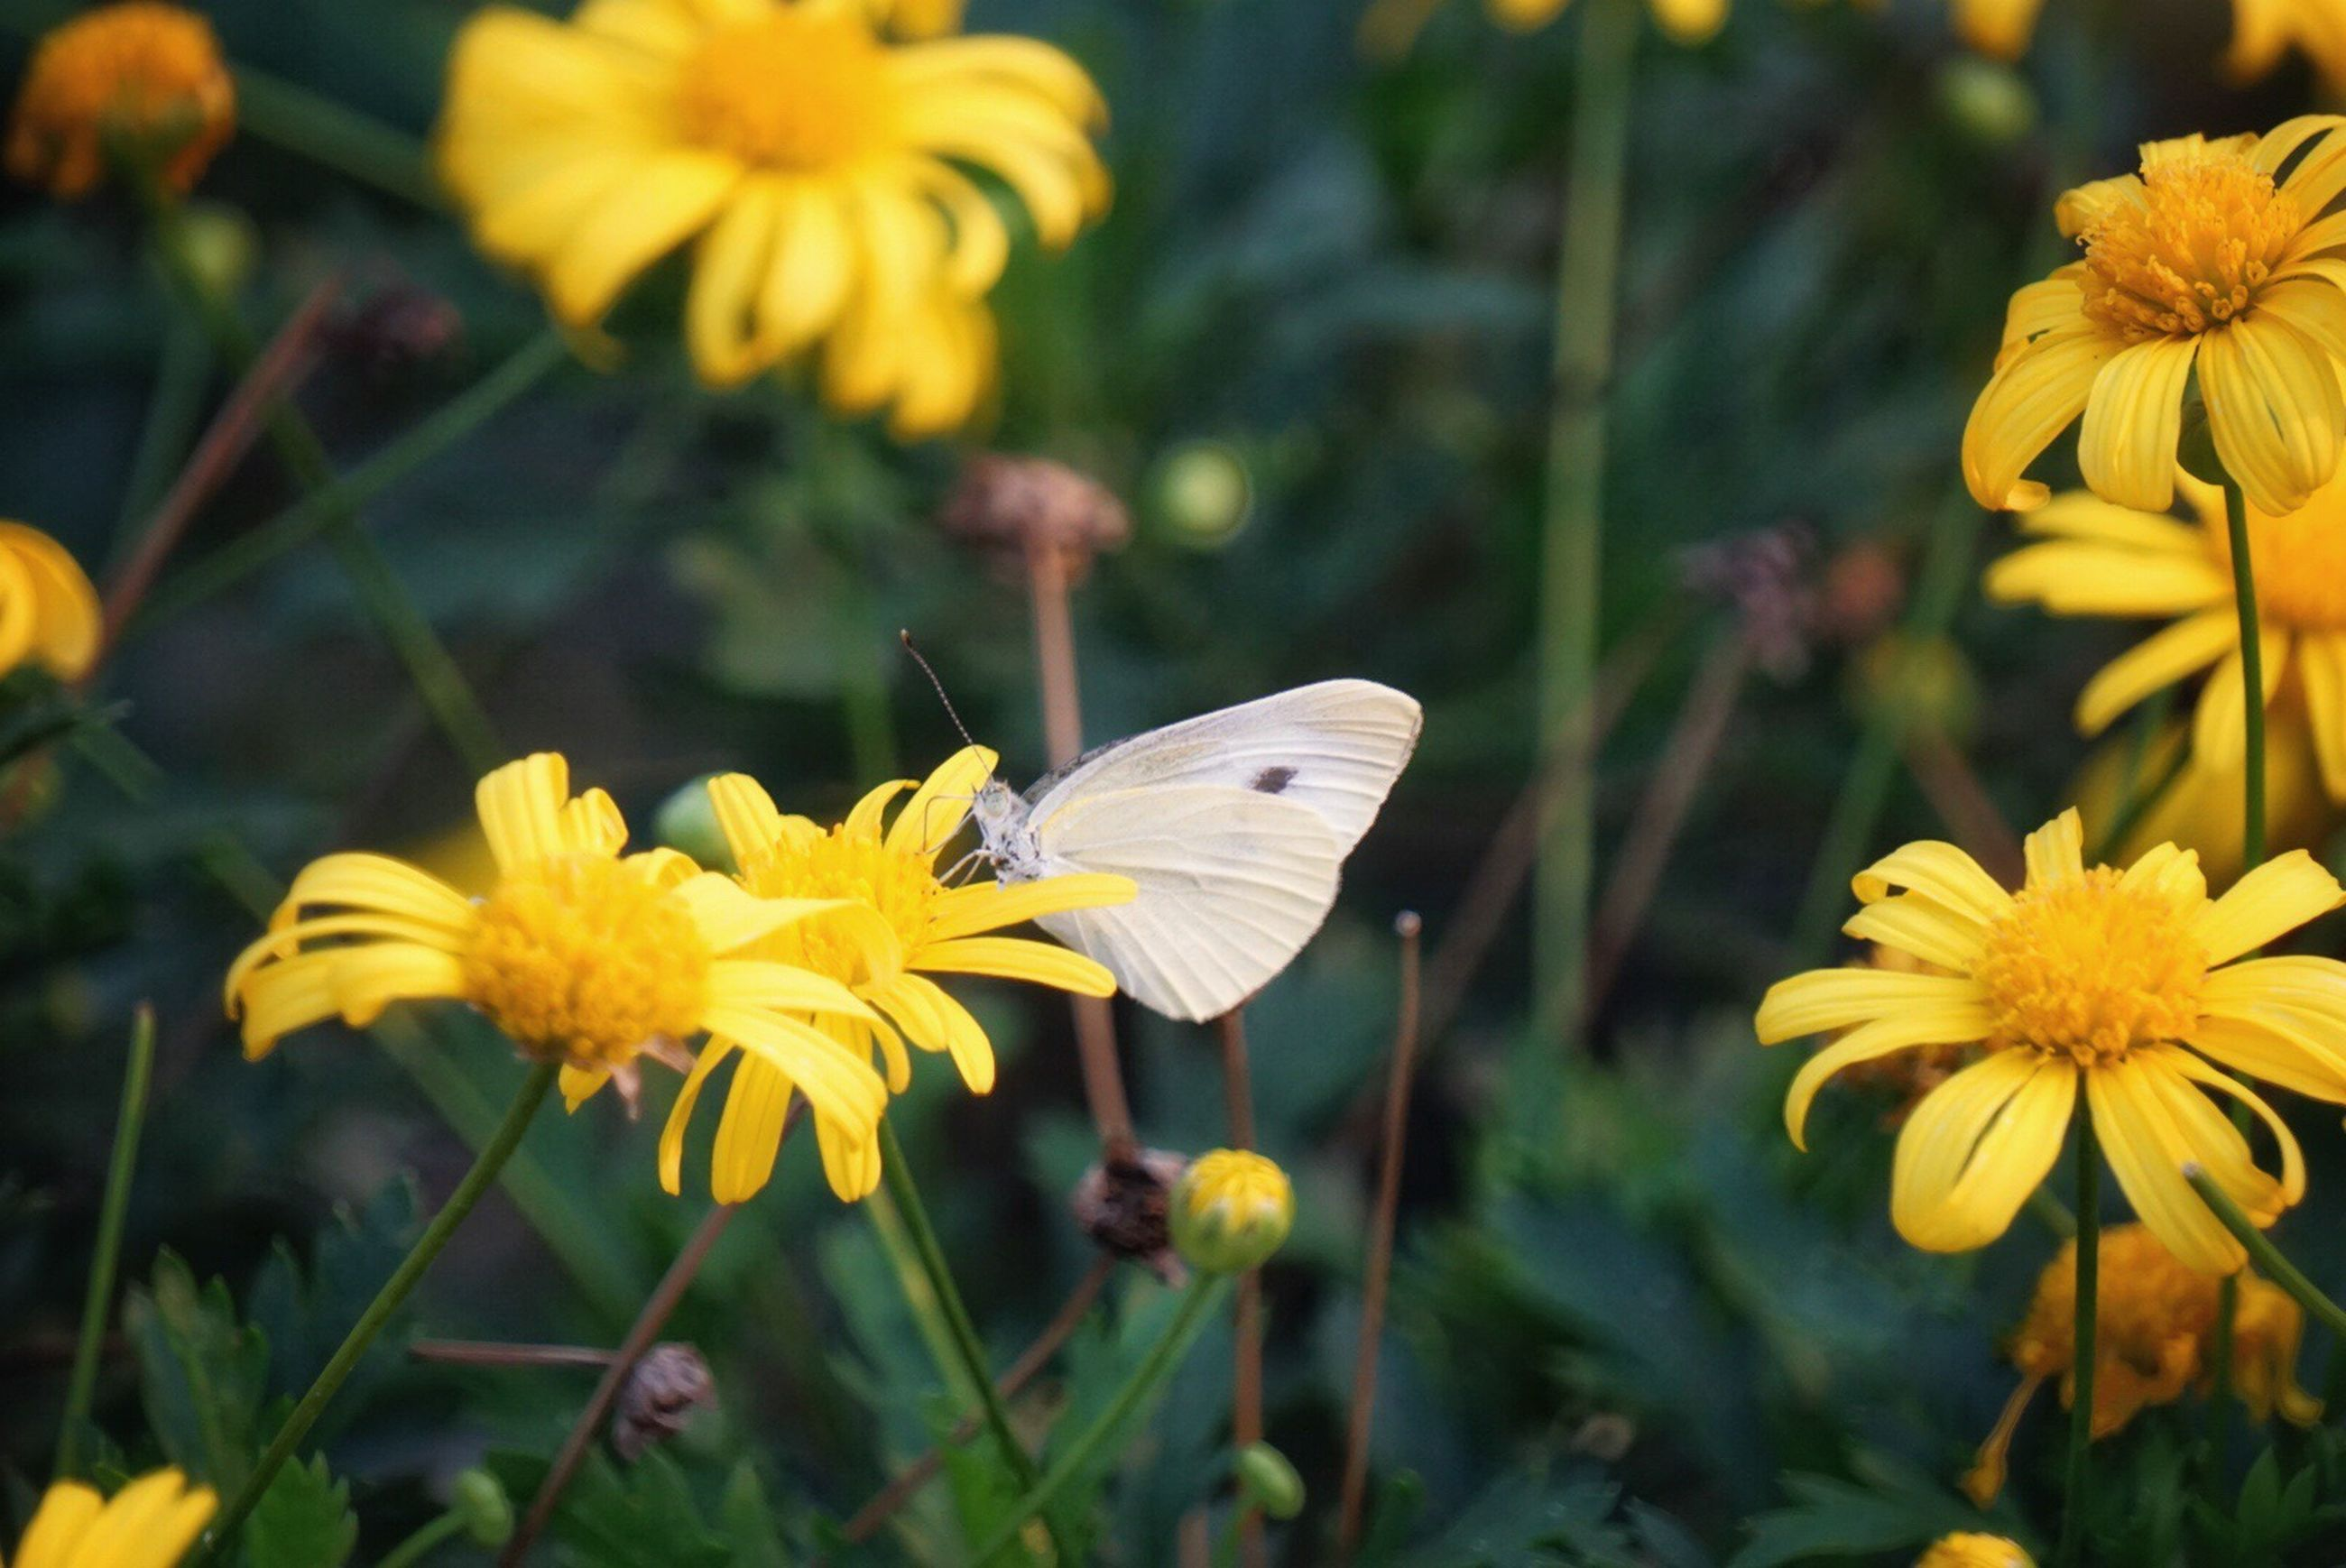 flower, petal, insect, freshness, yellow, fragility, wildlife, flower head, pollination, growth, beauty in nature, focus on foreground, close-up, nature, plant, blooming, pollen, symbiotic relationship, butterfly - insect, outdoors, day, stem, in bloom, no people, botany, blossom, selective focus